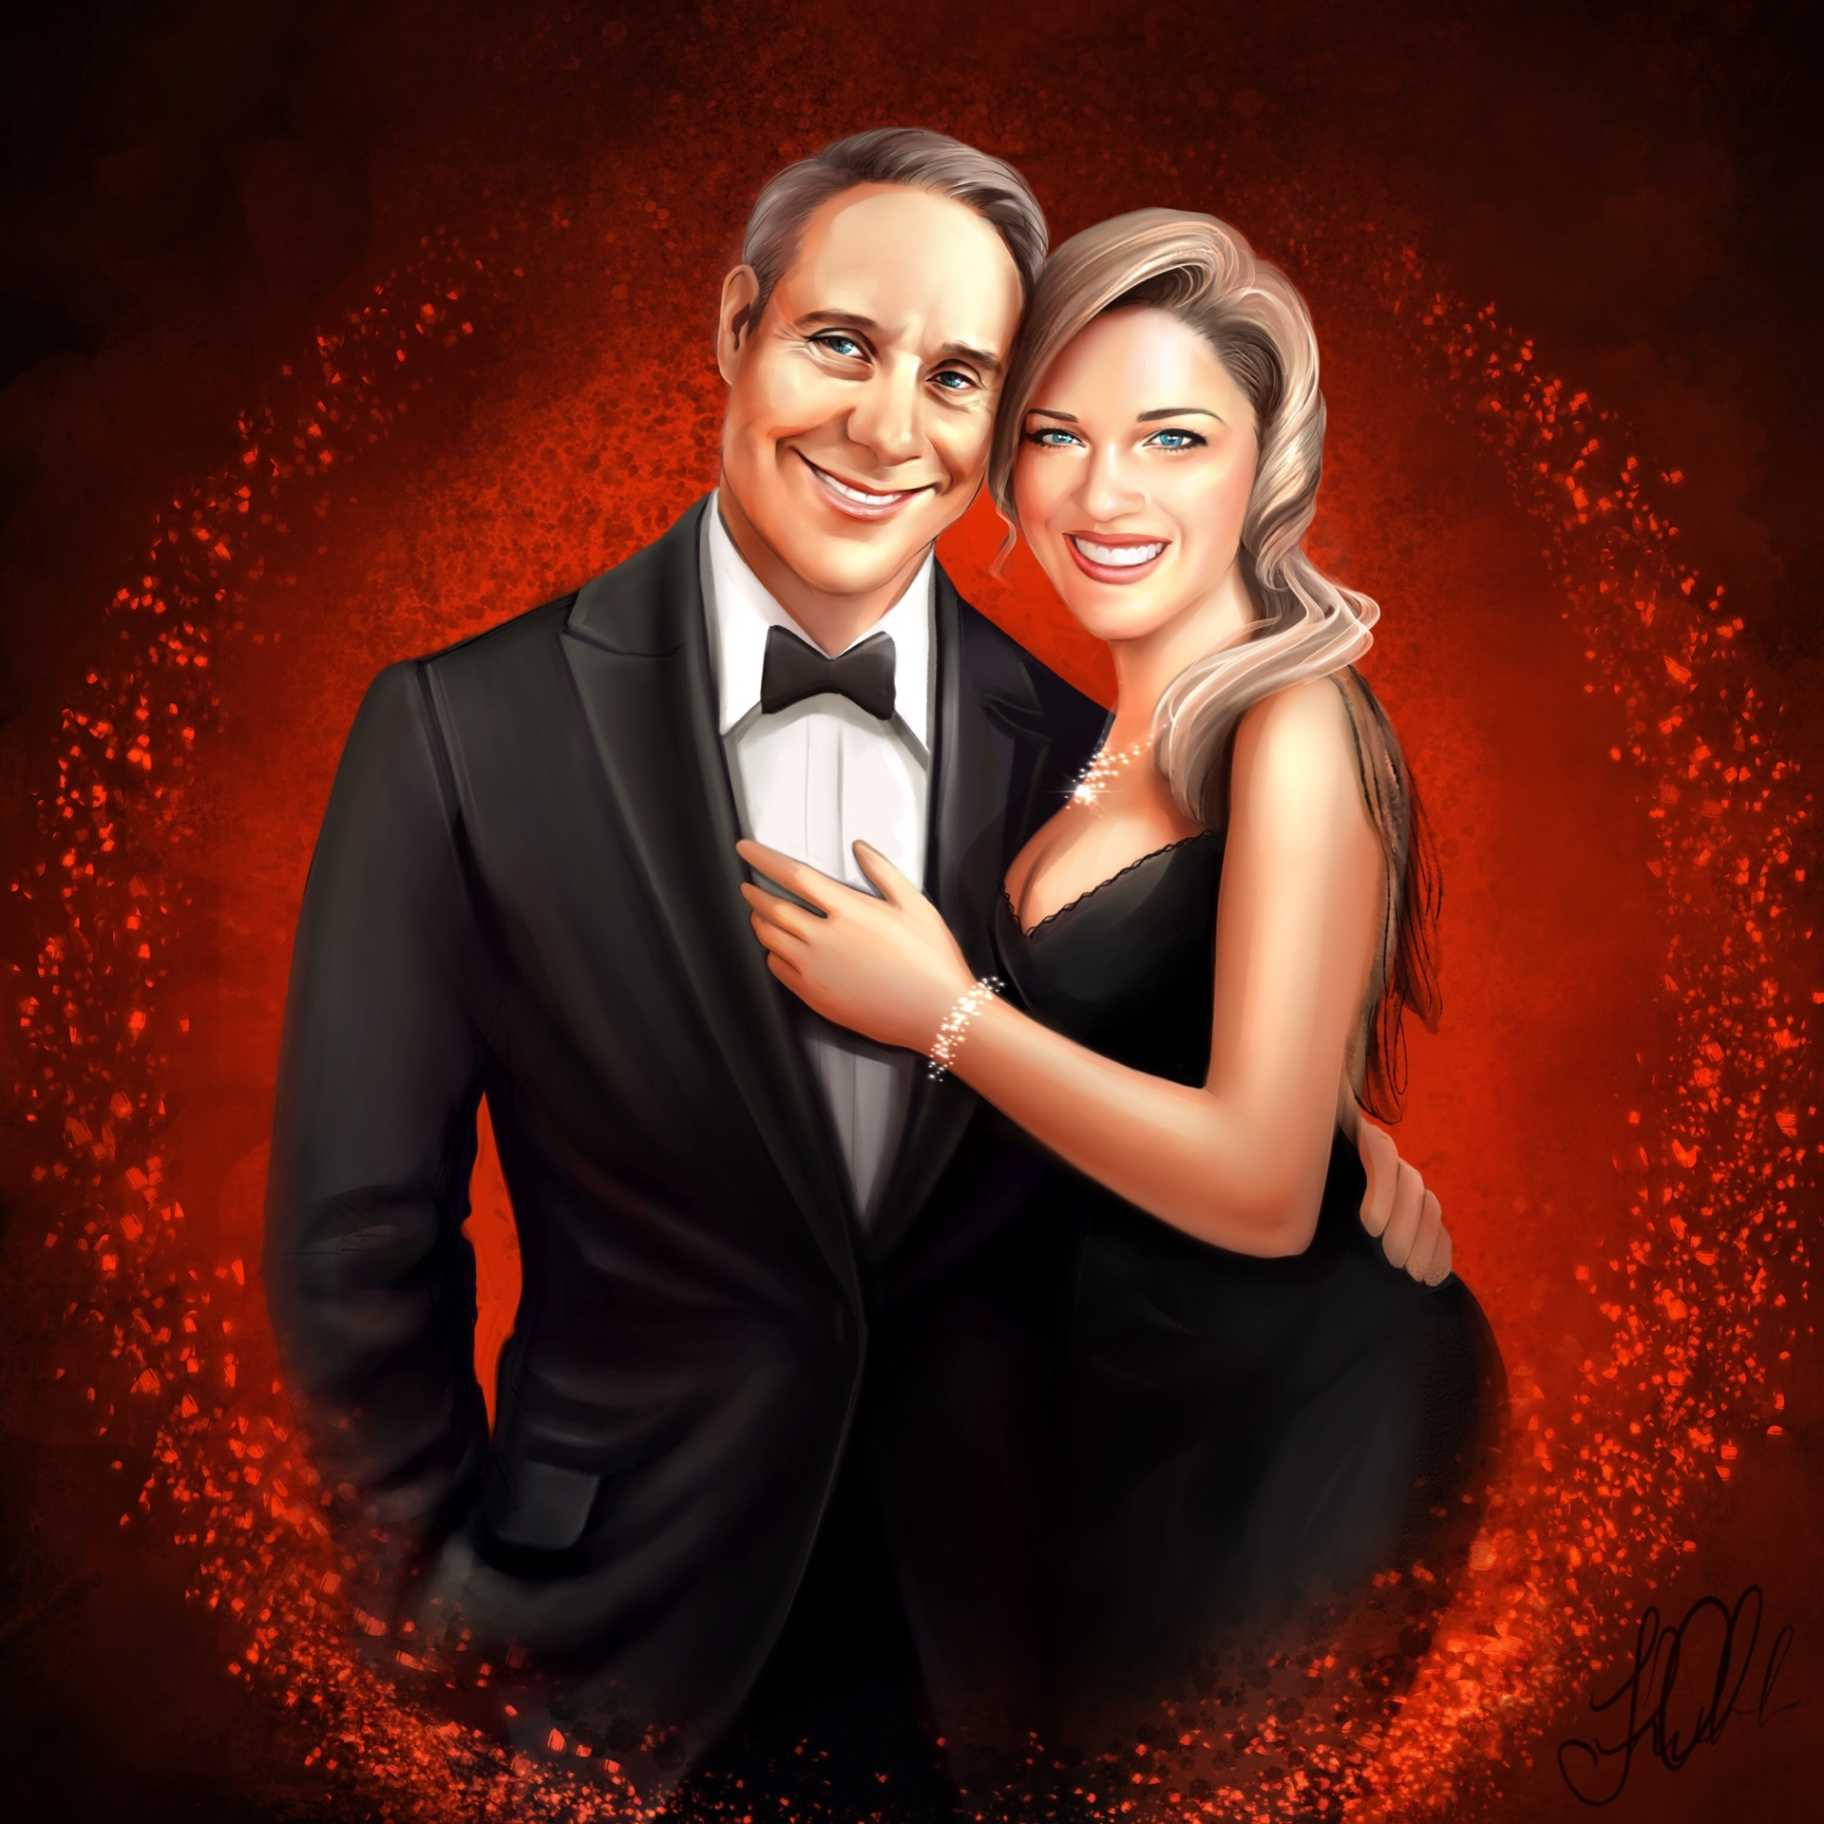 custom digital portrait painting commission from photo of a couple by an artist